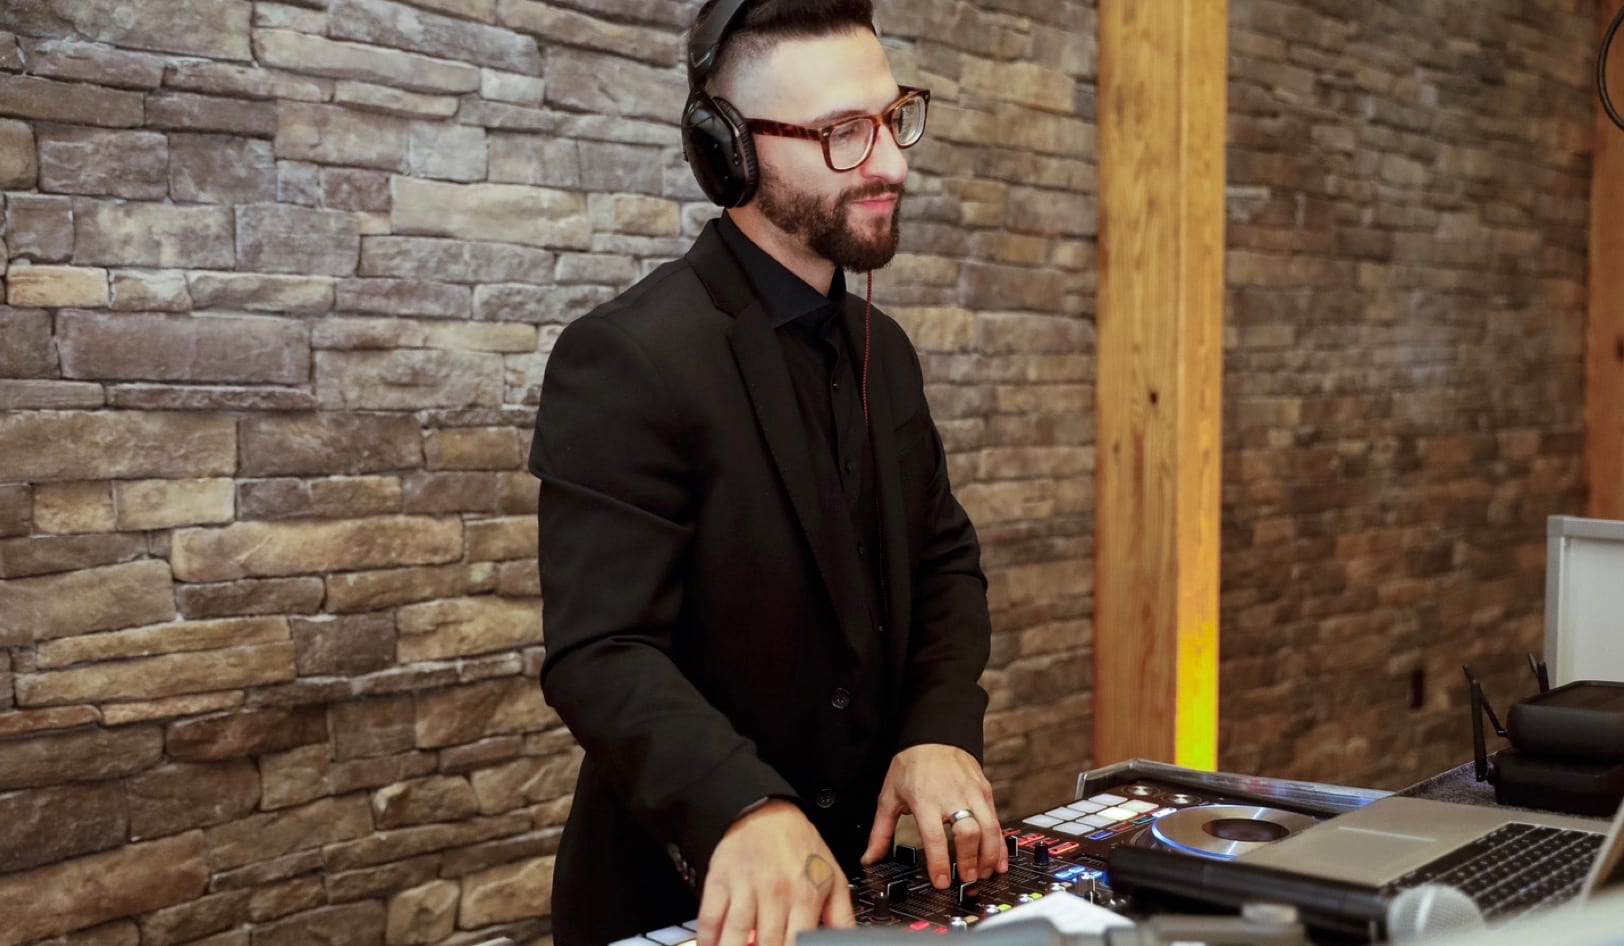 A DJ with headphones on in front of a brick wall.